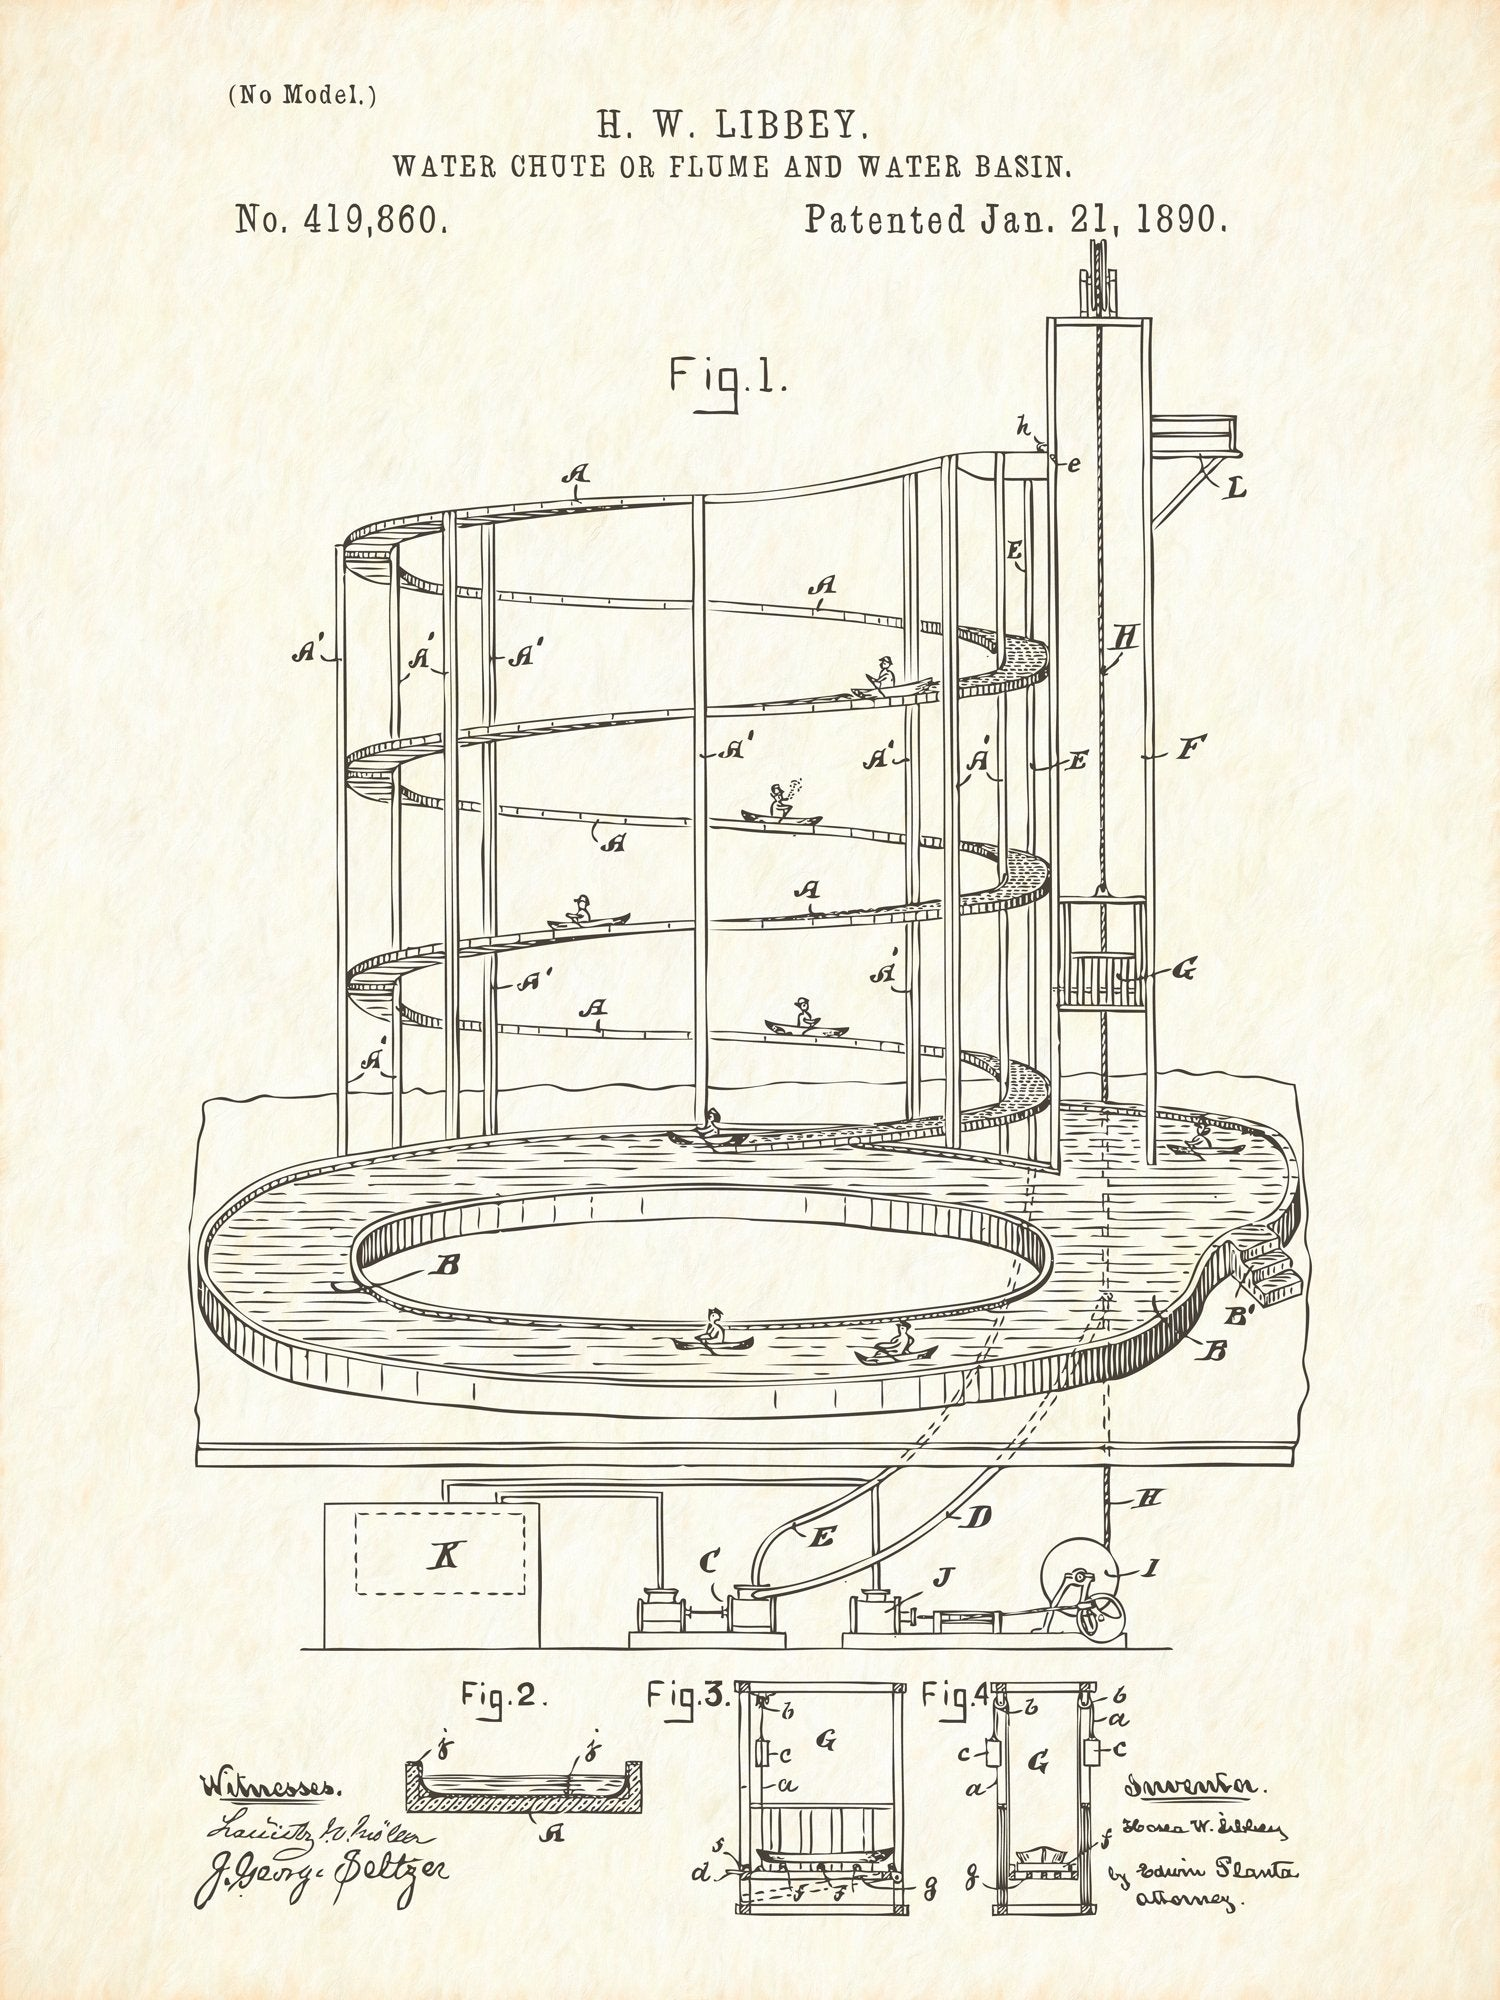 U.S. Patent No. 419860-1 Water Chute or Flume and Water Basin Reworked, Series 1